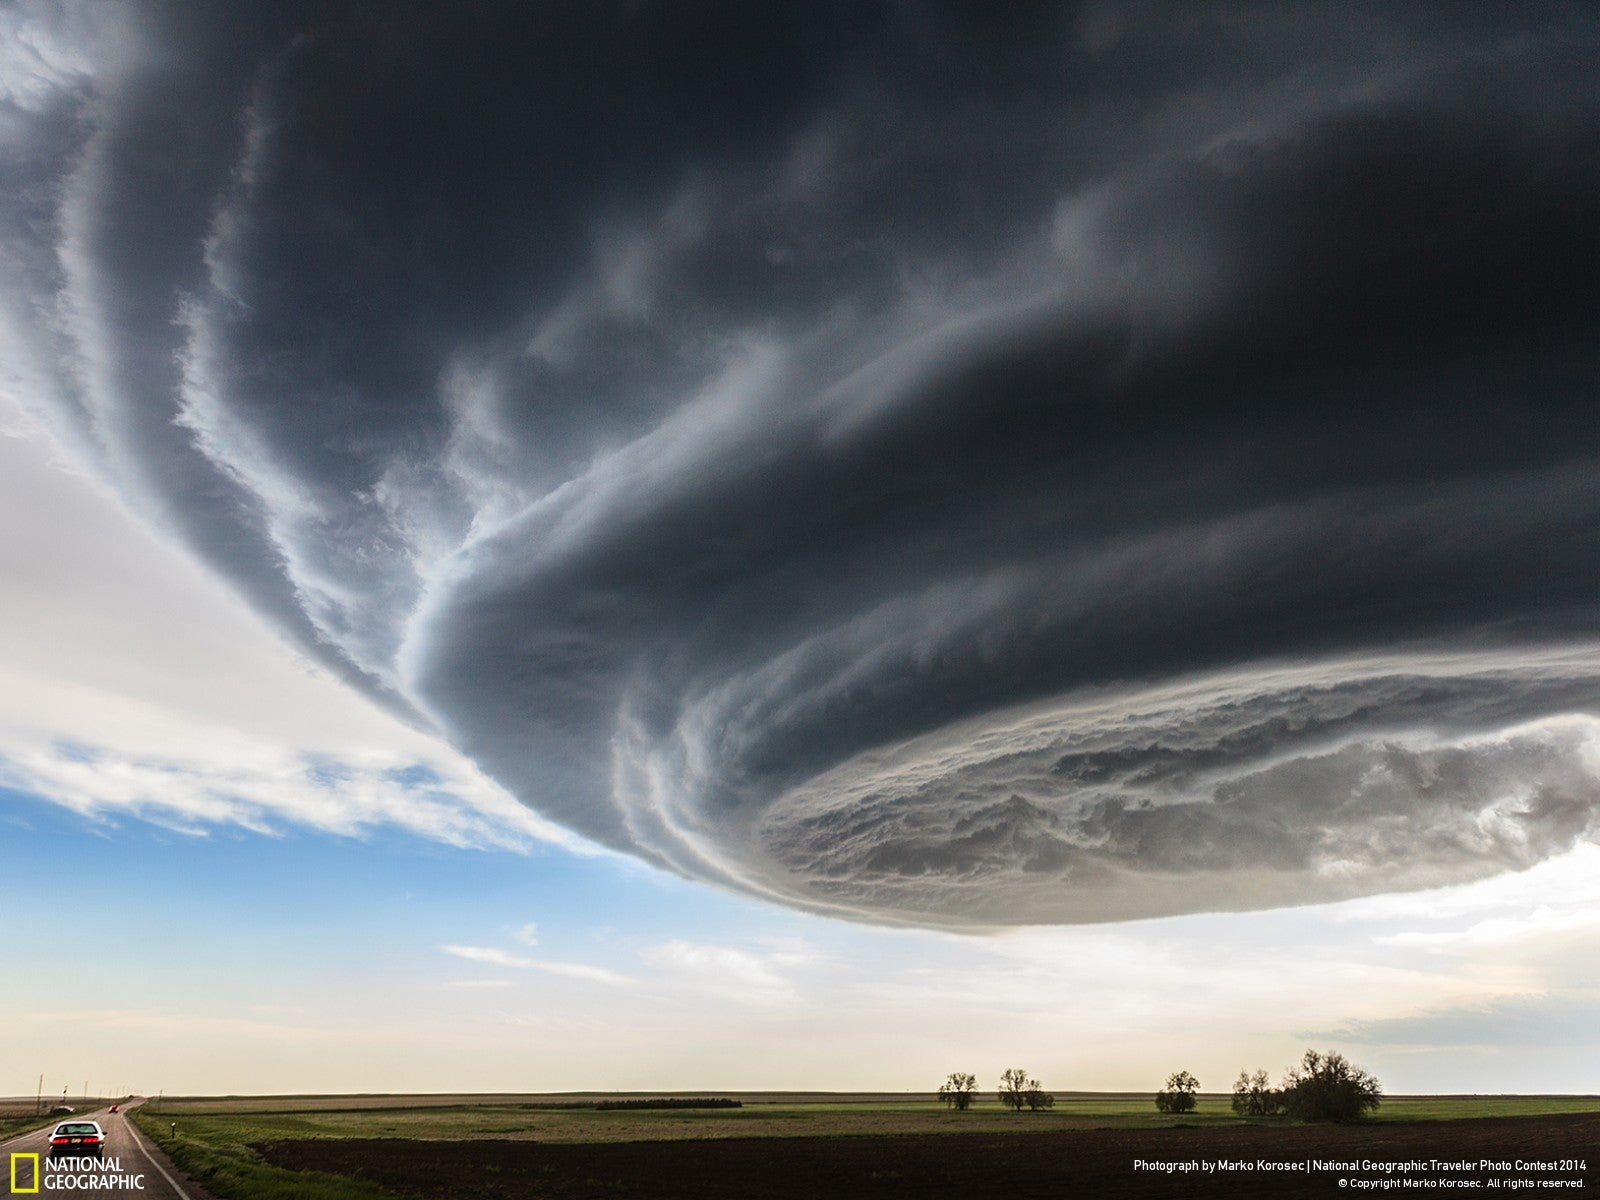 Wow, the winners of the National Geographic Photo Contest are unreal